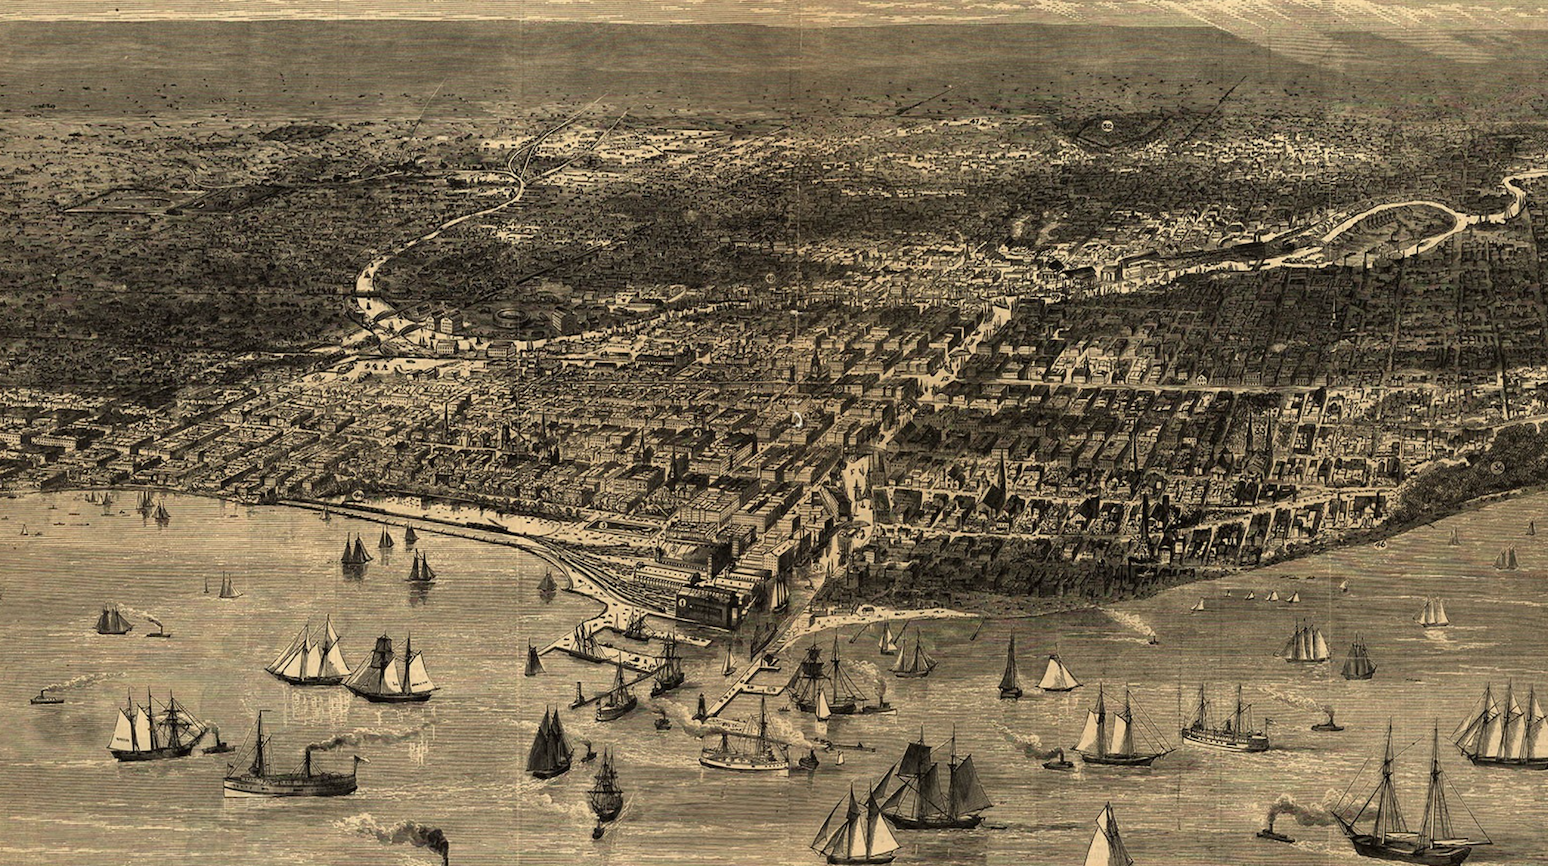 A drawing of boats on Lake Michigan and Chicago from above.